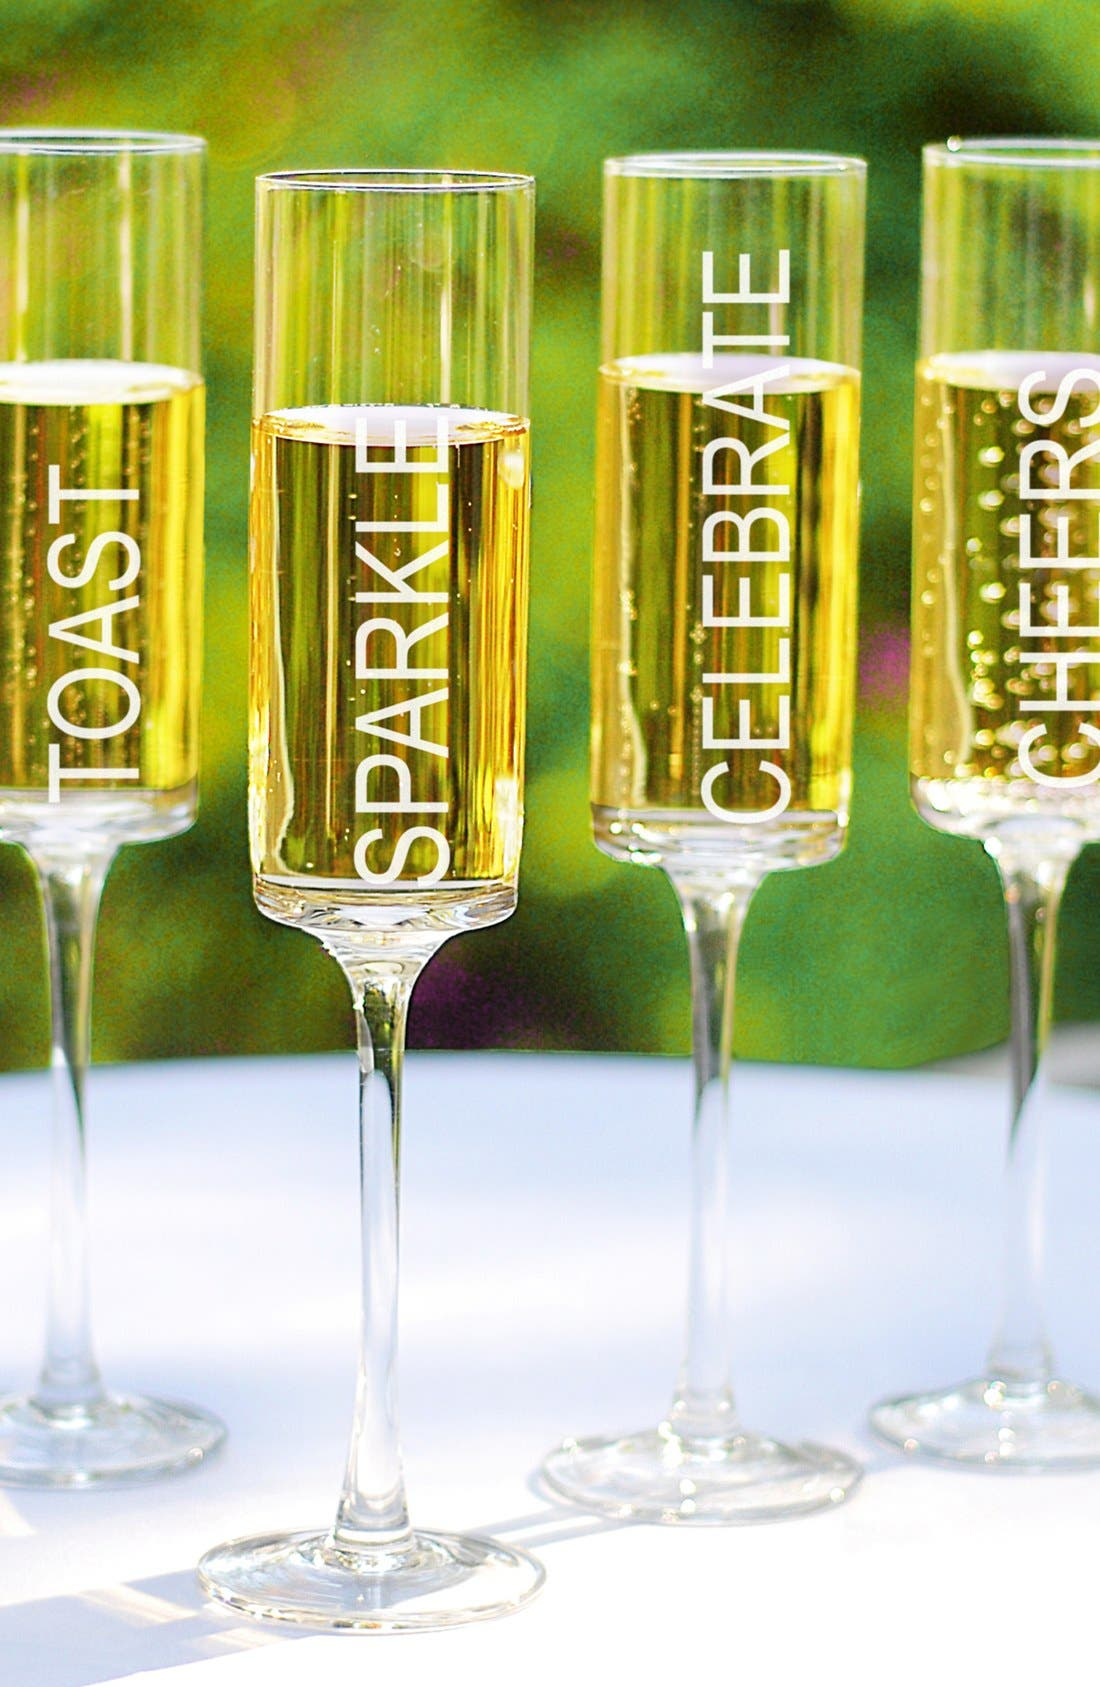 Alternate Image 1 Selected - Cathy's Concepts 'Celebrate!' Contemporary Champagne Flutes